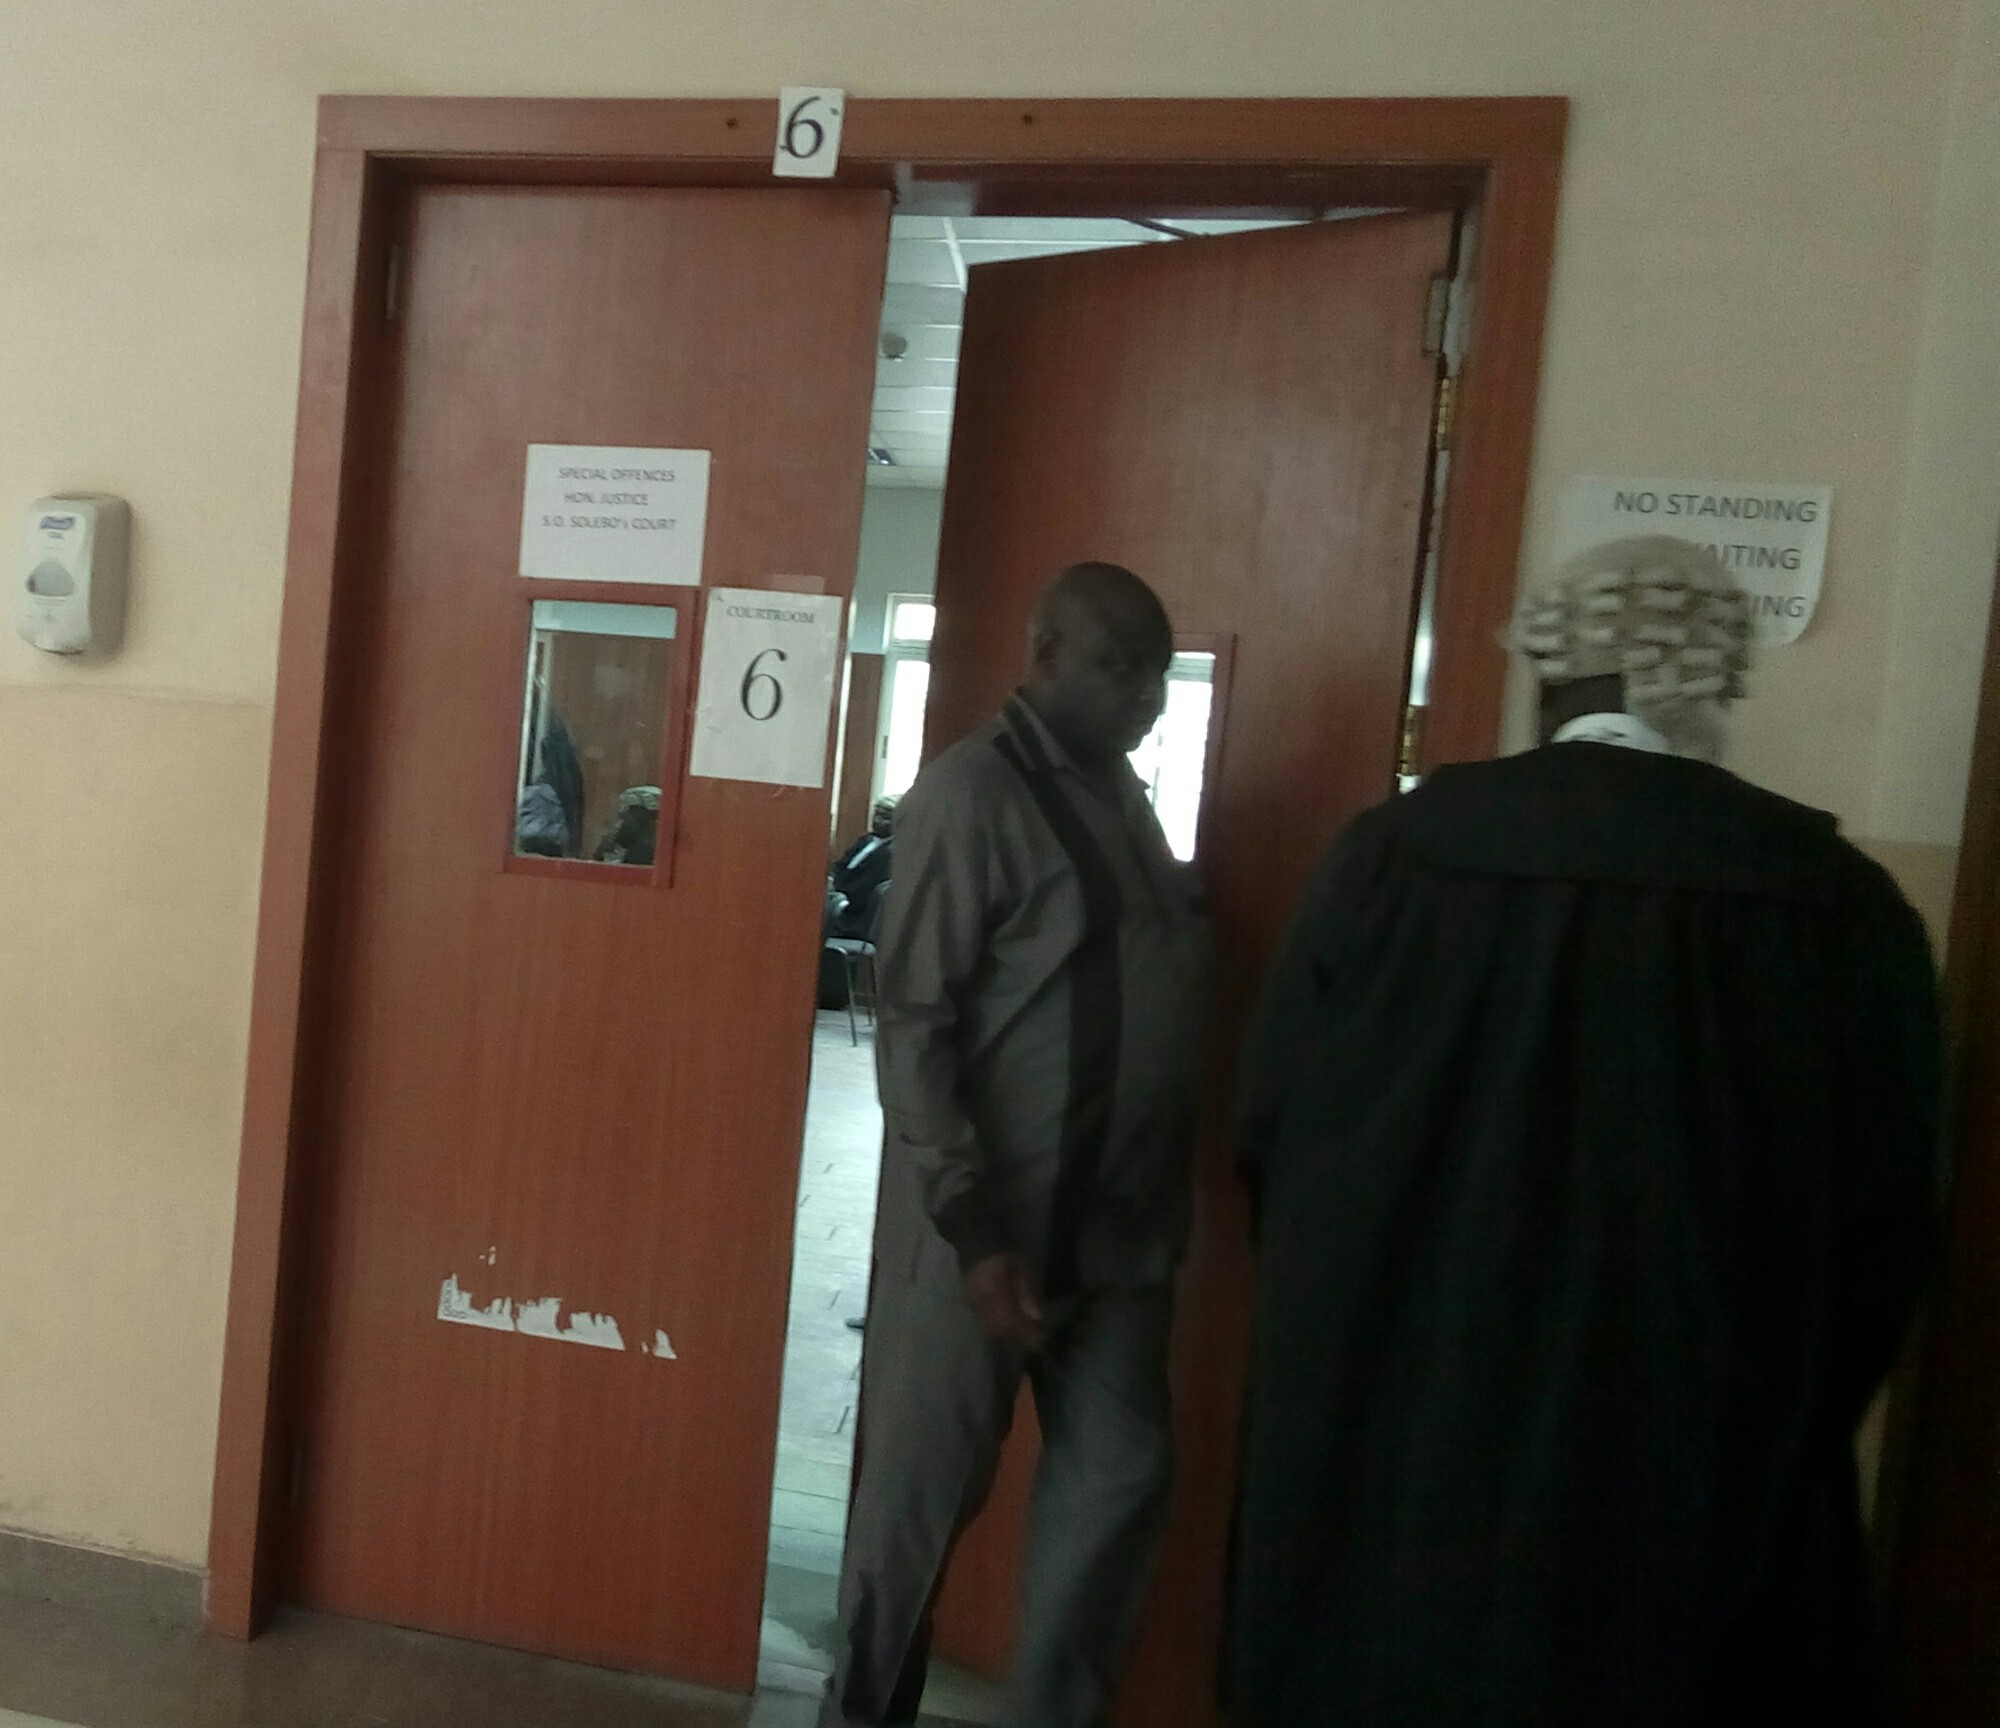 COURT ORDERS EFCC TO RELEASE JUSTICE YUNUSA MOHAMMED NOSIRU'S TRAVEL DOCUMENTS TO CHIEF REGISTRAR